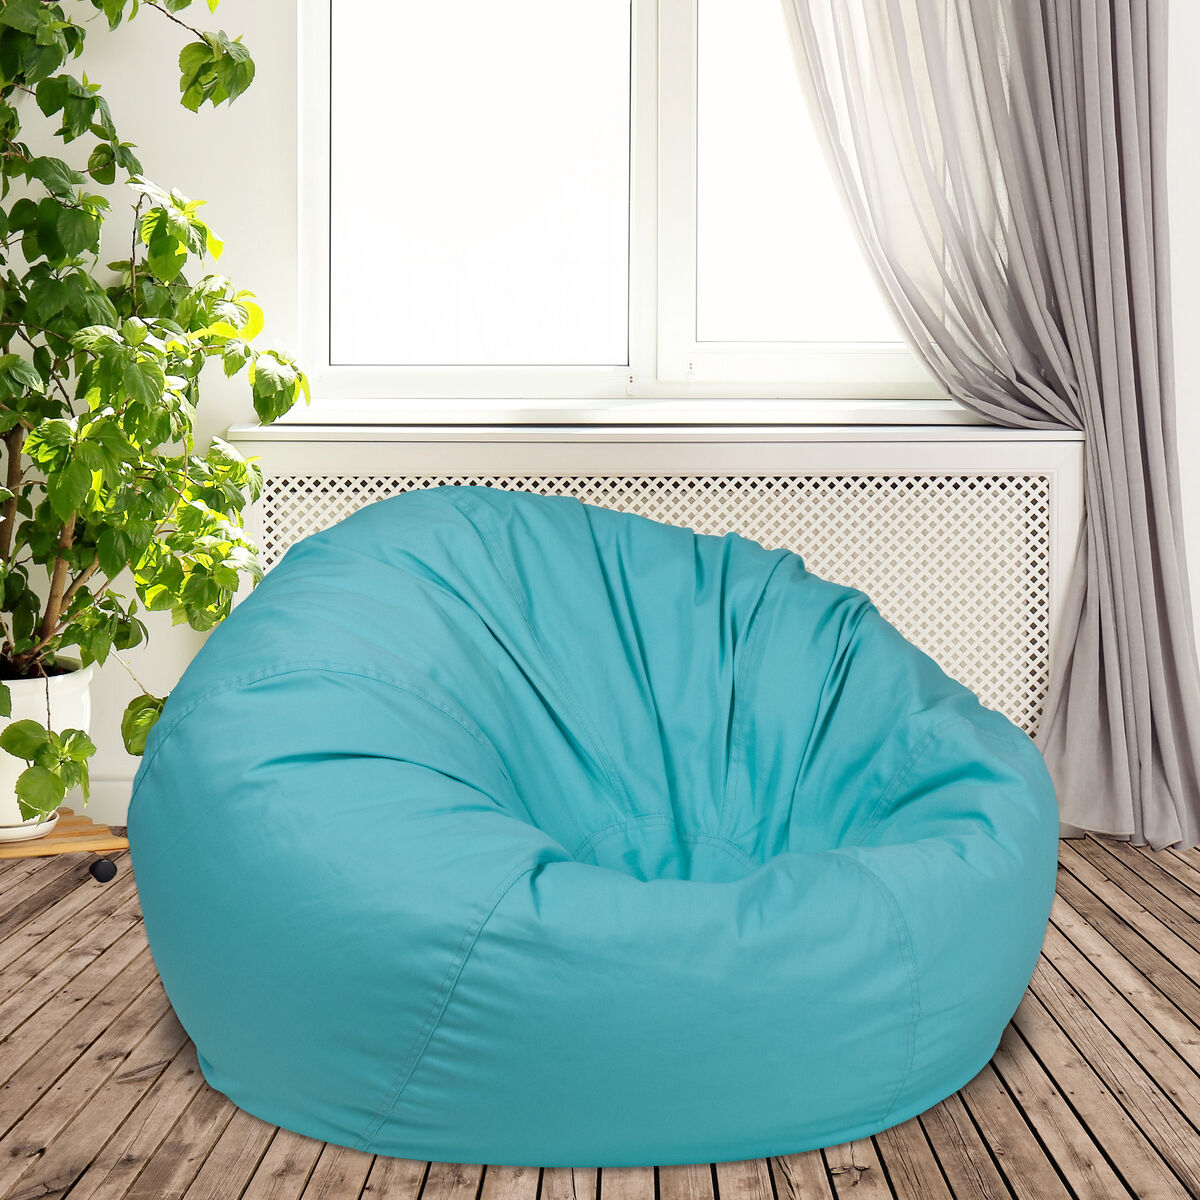 Remarkable Oversized Solid Mint Green Bean Bag Chair For Kids And Adults Andrewgaddart Wooden Chair Designs For Living Room Andrewgaddartcom